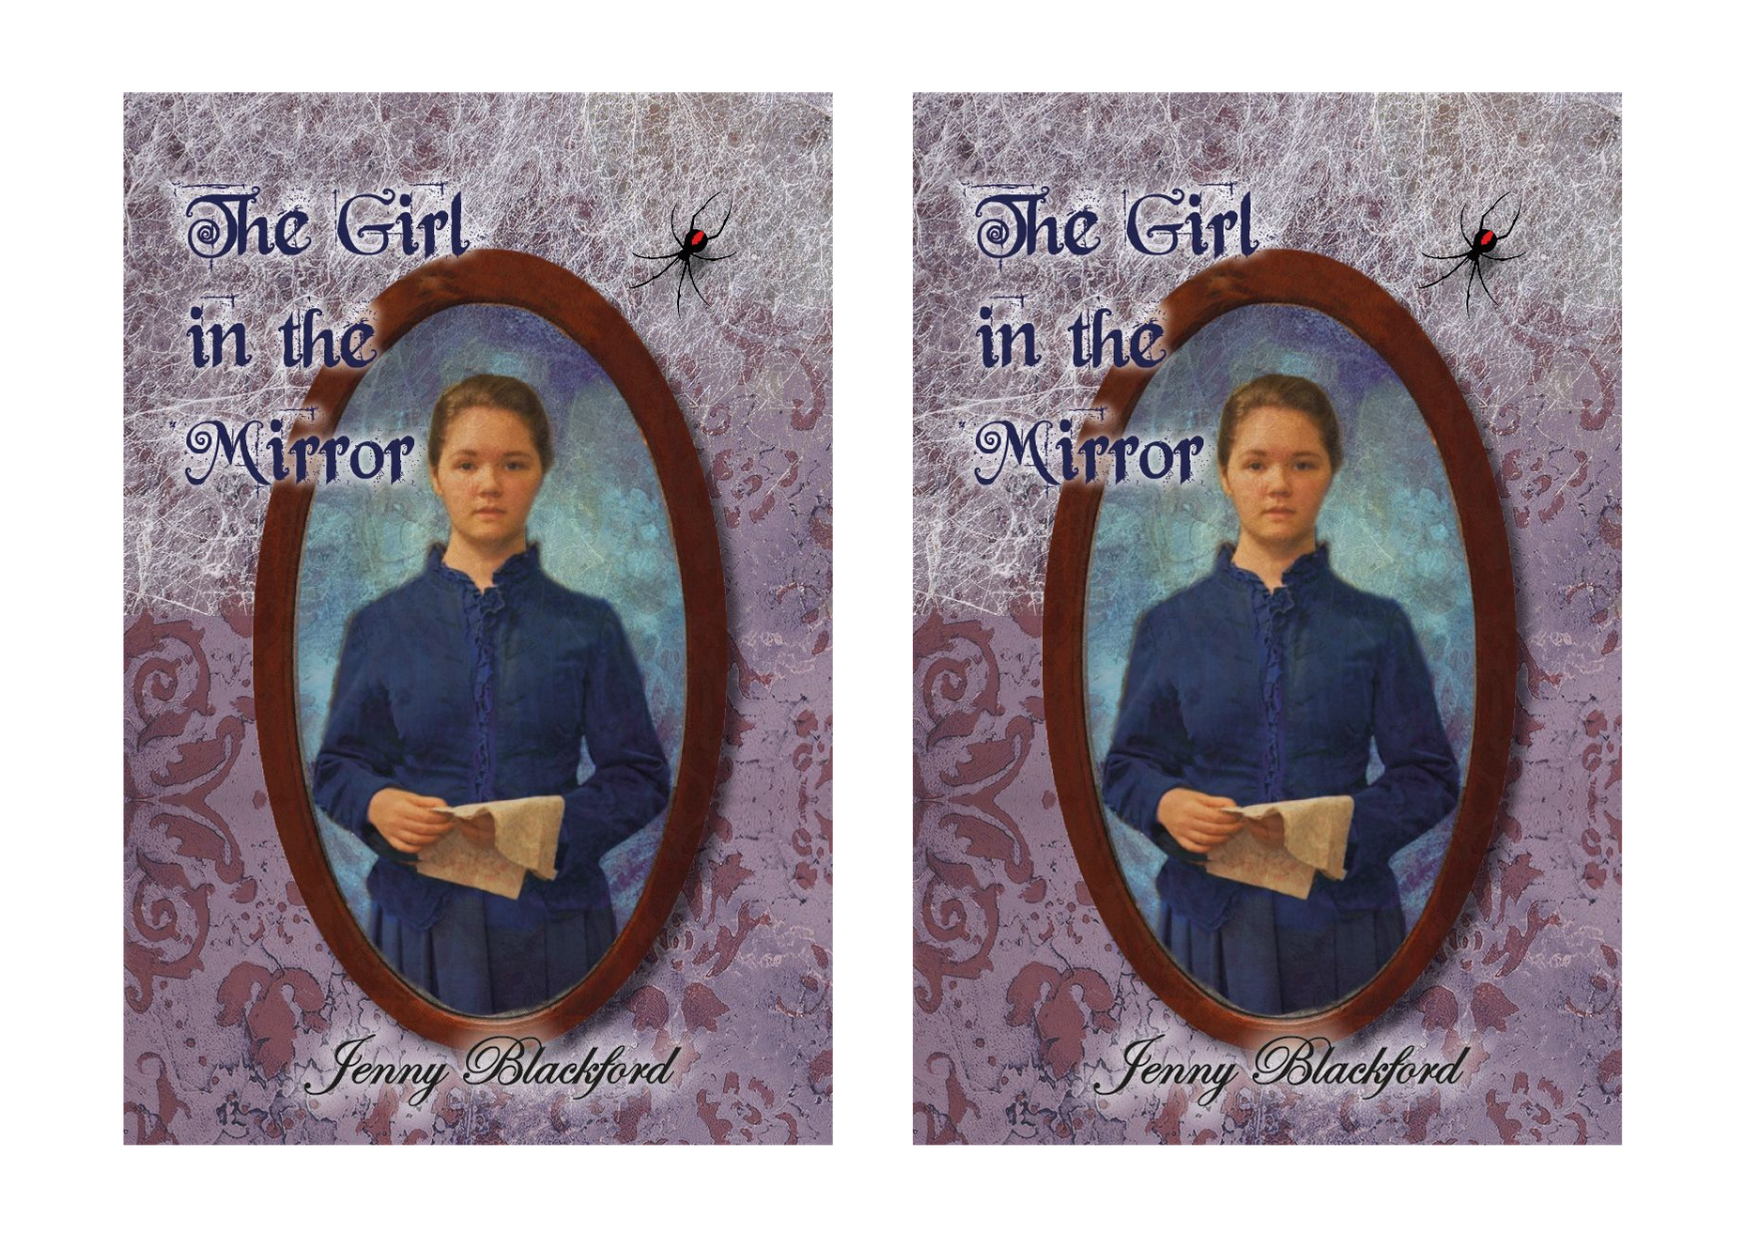 Christmas Press - The Girl in the Mirror